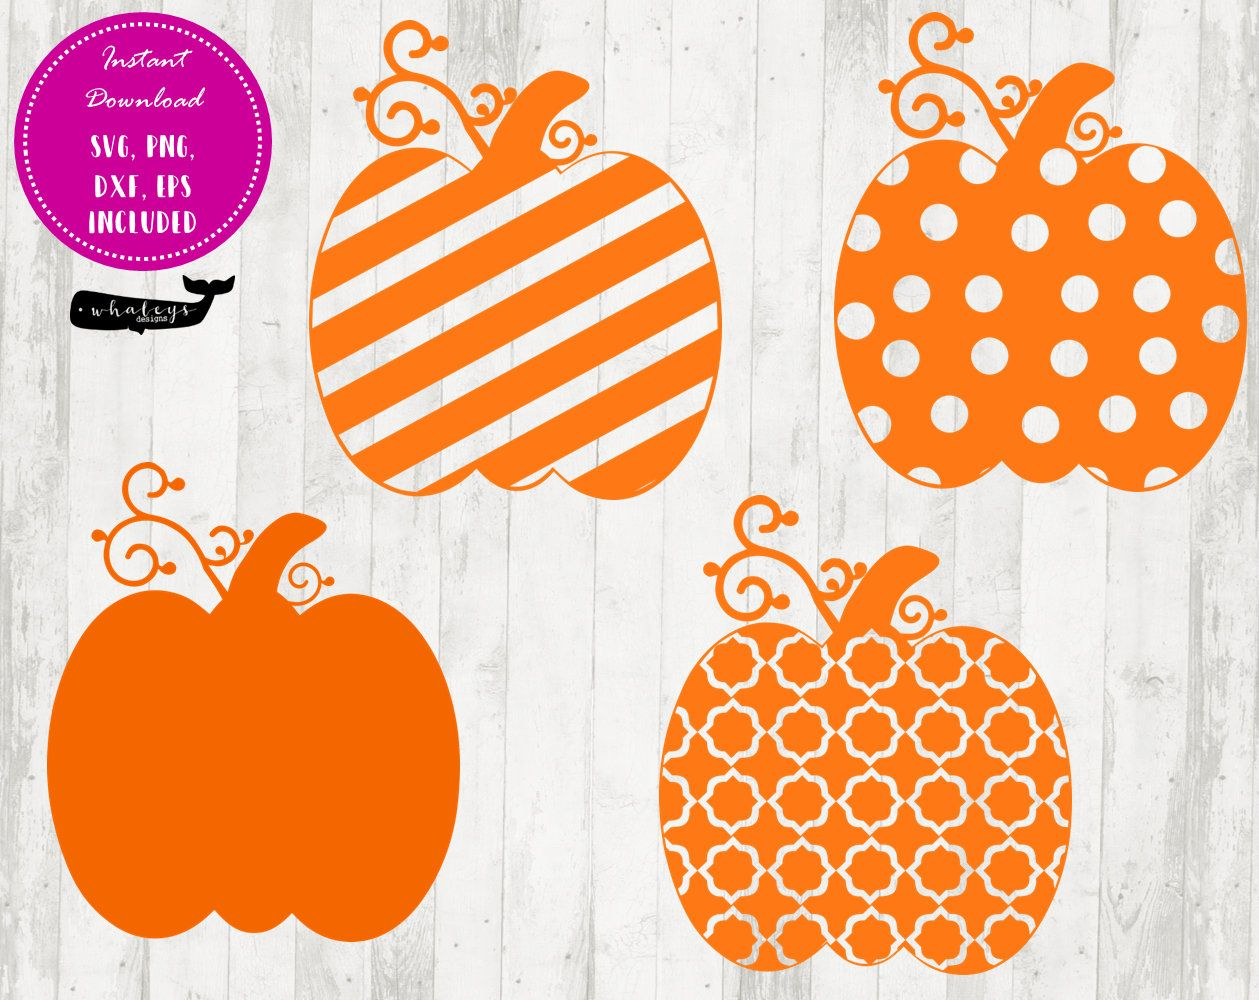 Pumpkin Design SVG Package, Striped Pumpkin, Polka Dot.